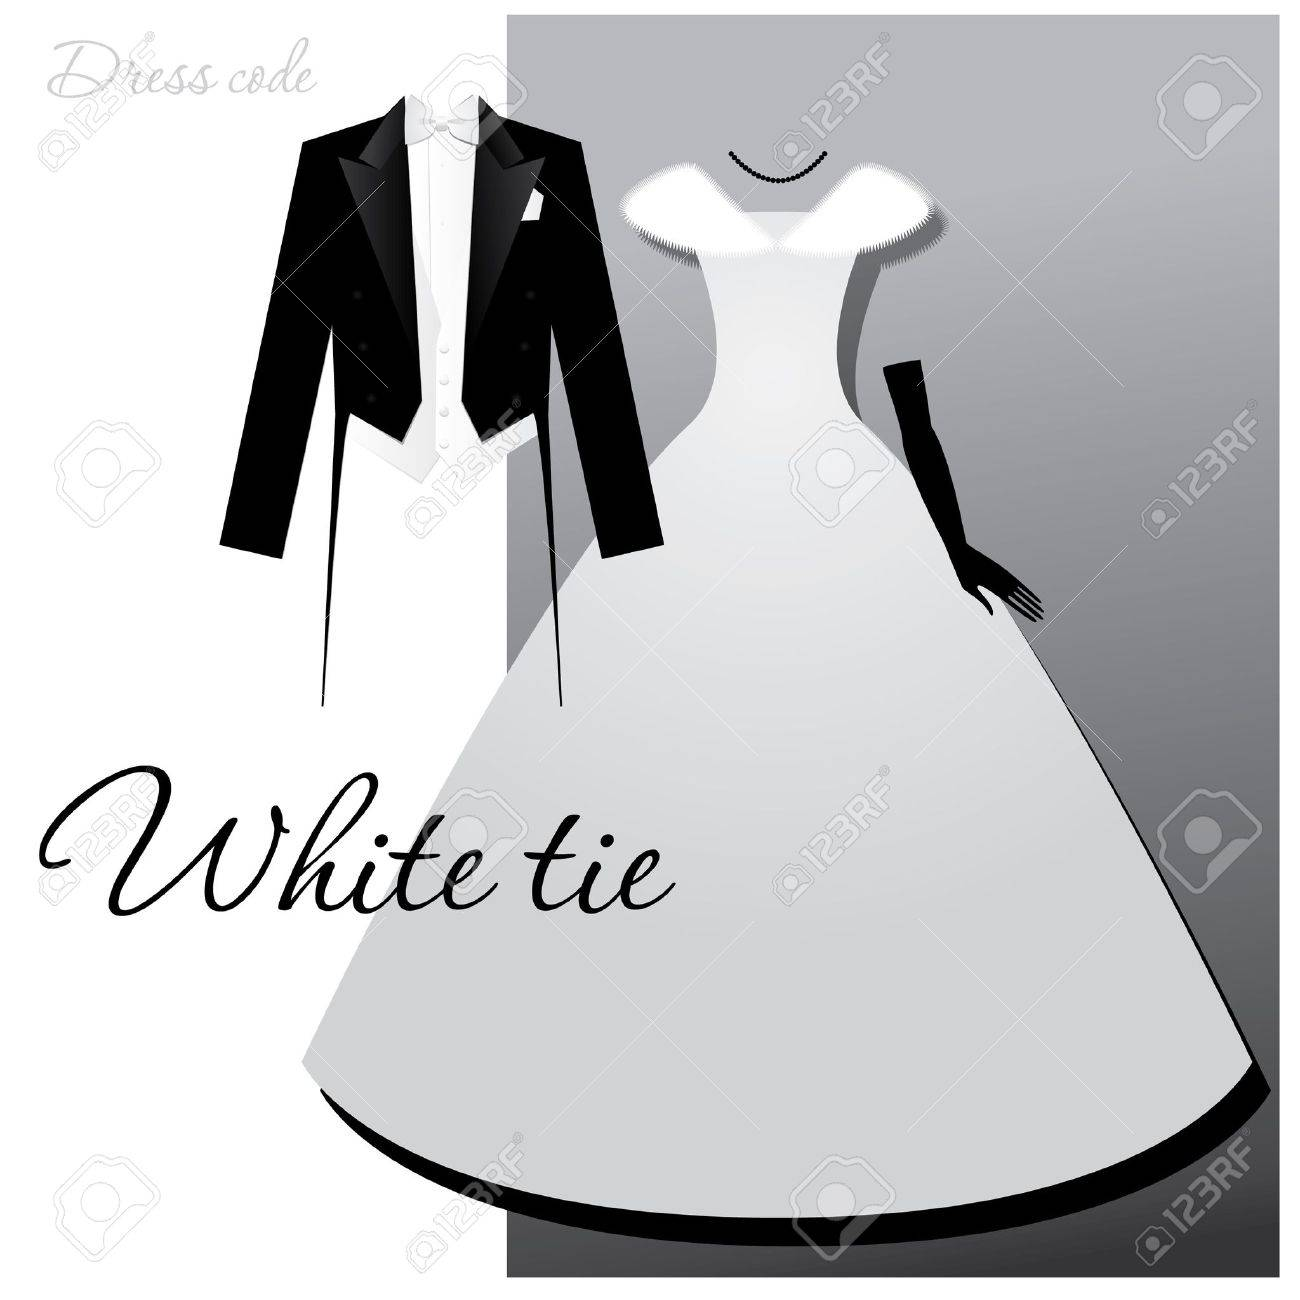 Dress code evening gown - Dress Code White Tie Male Tails Light Vest And White Bow Tie